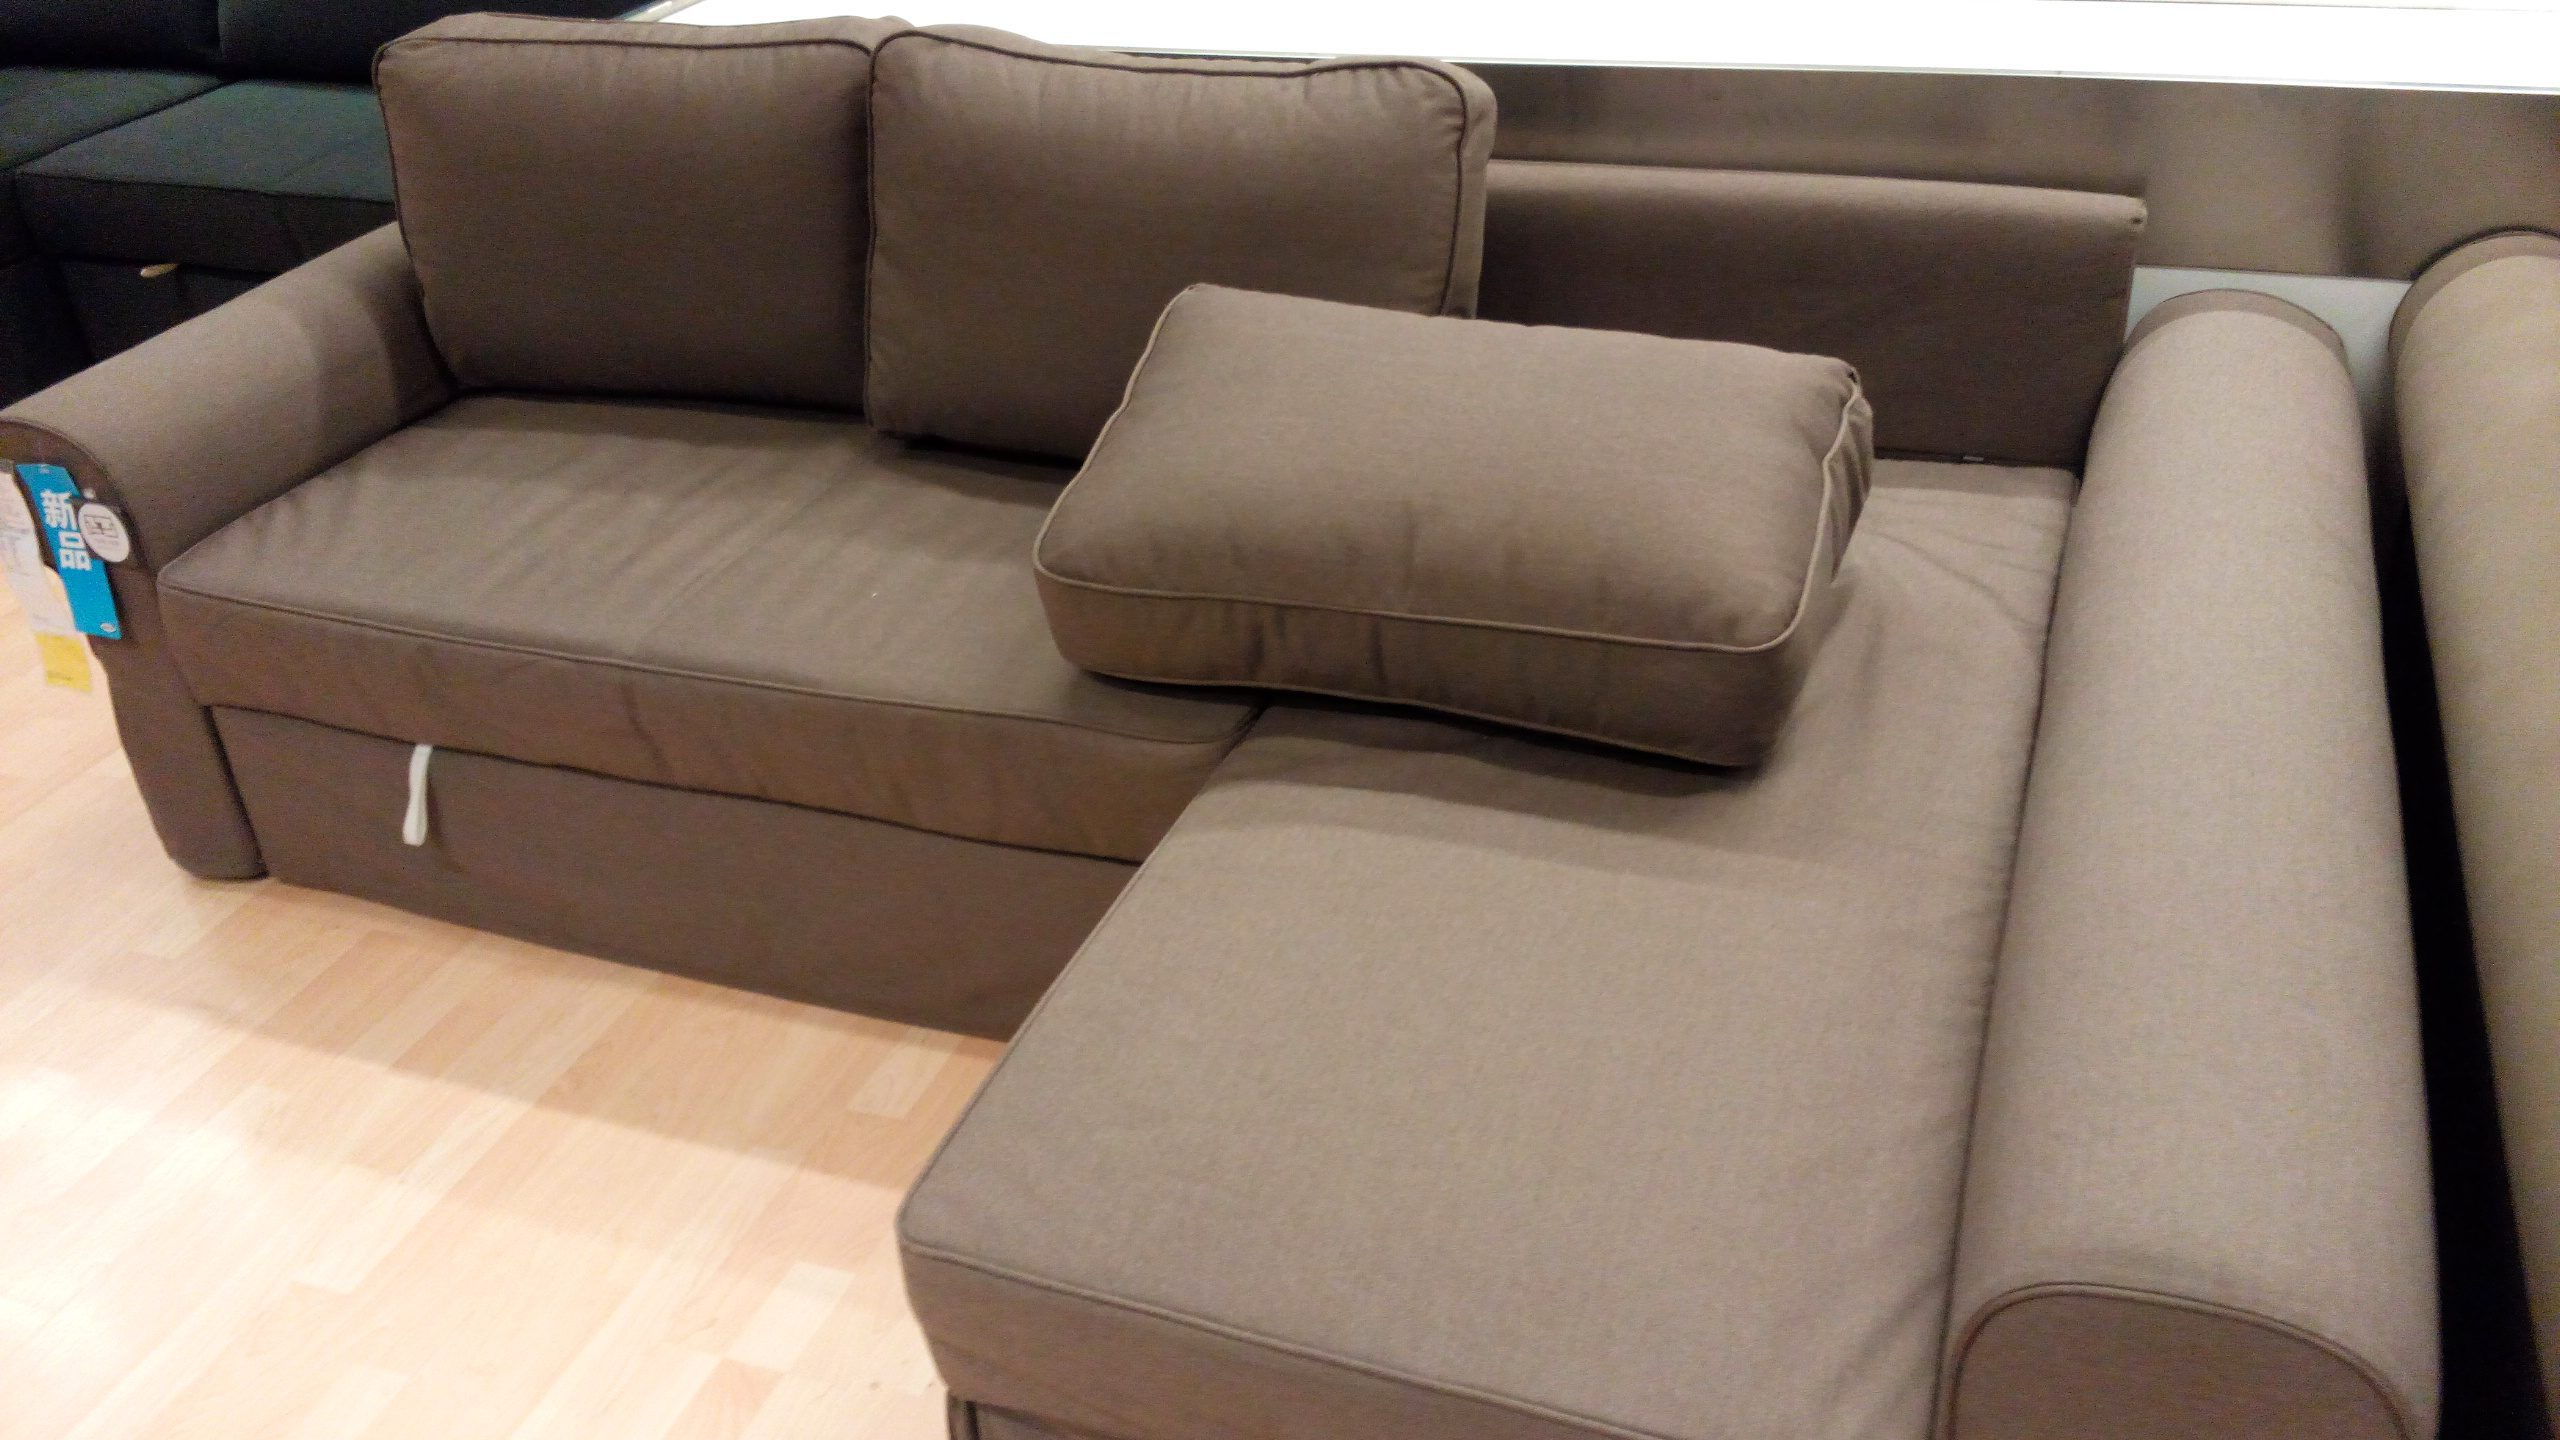 Sofa 3er Ikea Ikea Vilasund And Backabro Review Return Of The Sofa Bed Clones